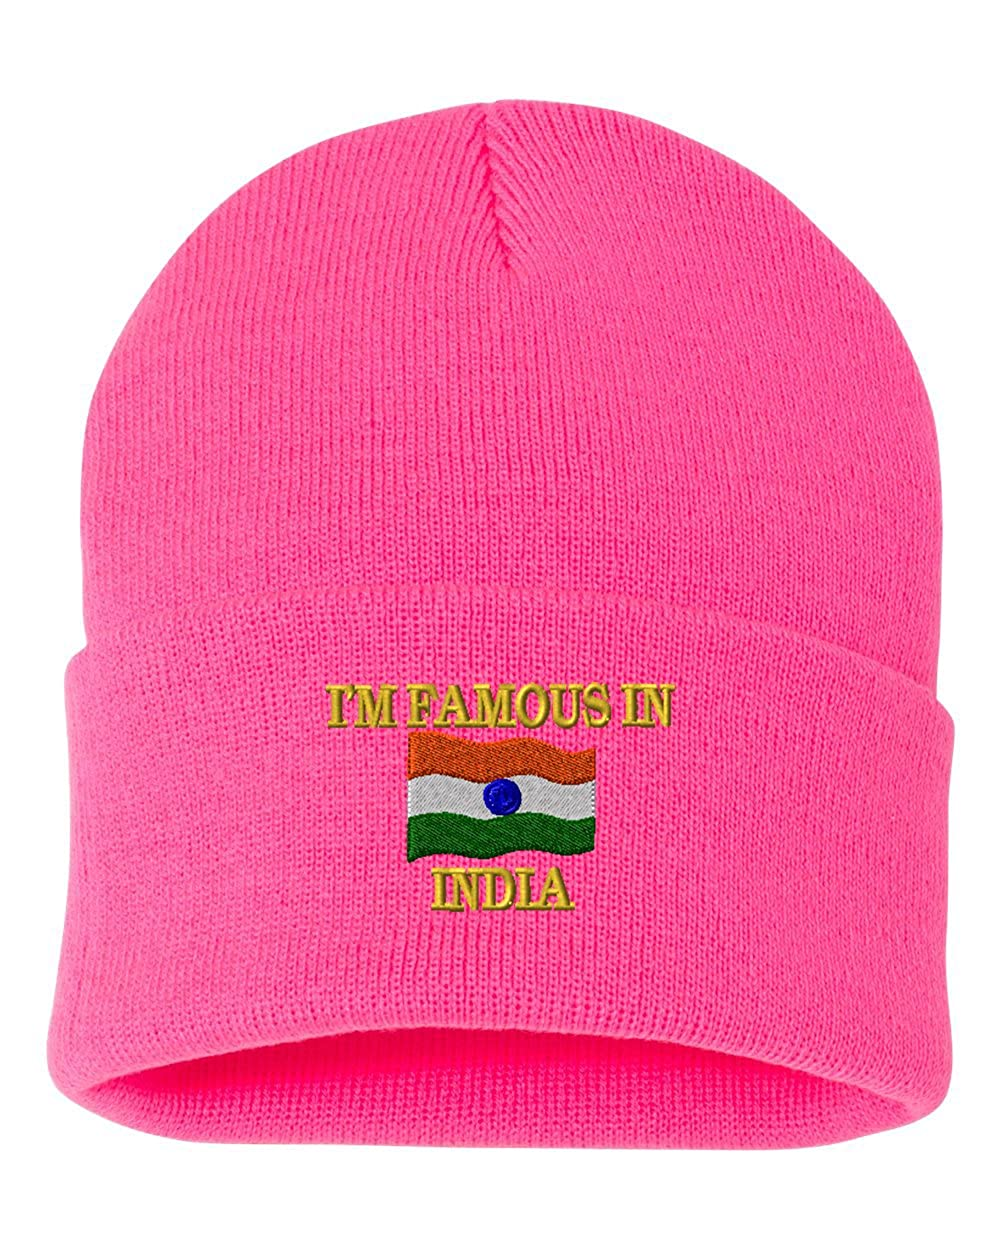 IM FAMOUS IN INDIA Custom Personalized Embroidery Embroidered Beanie